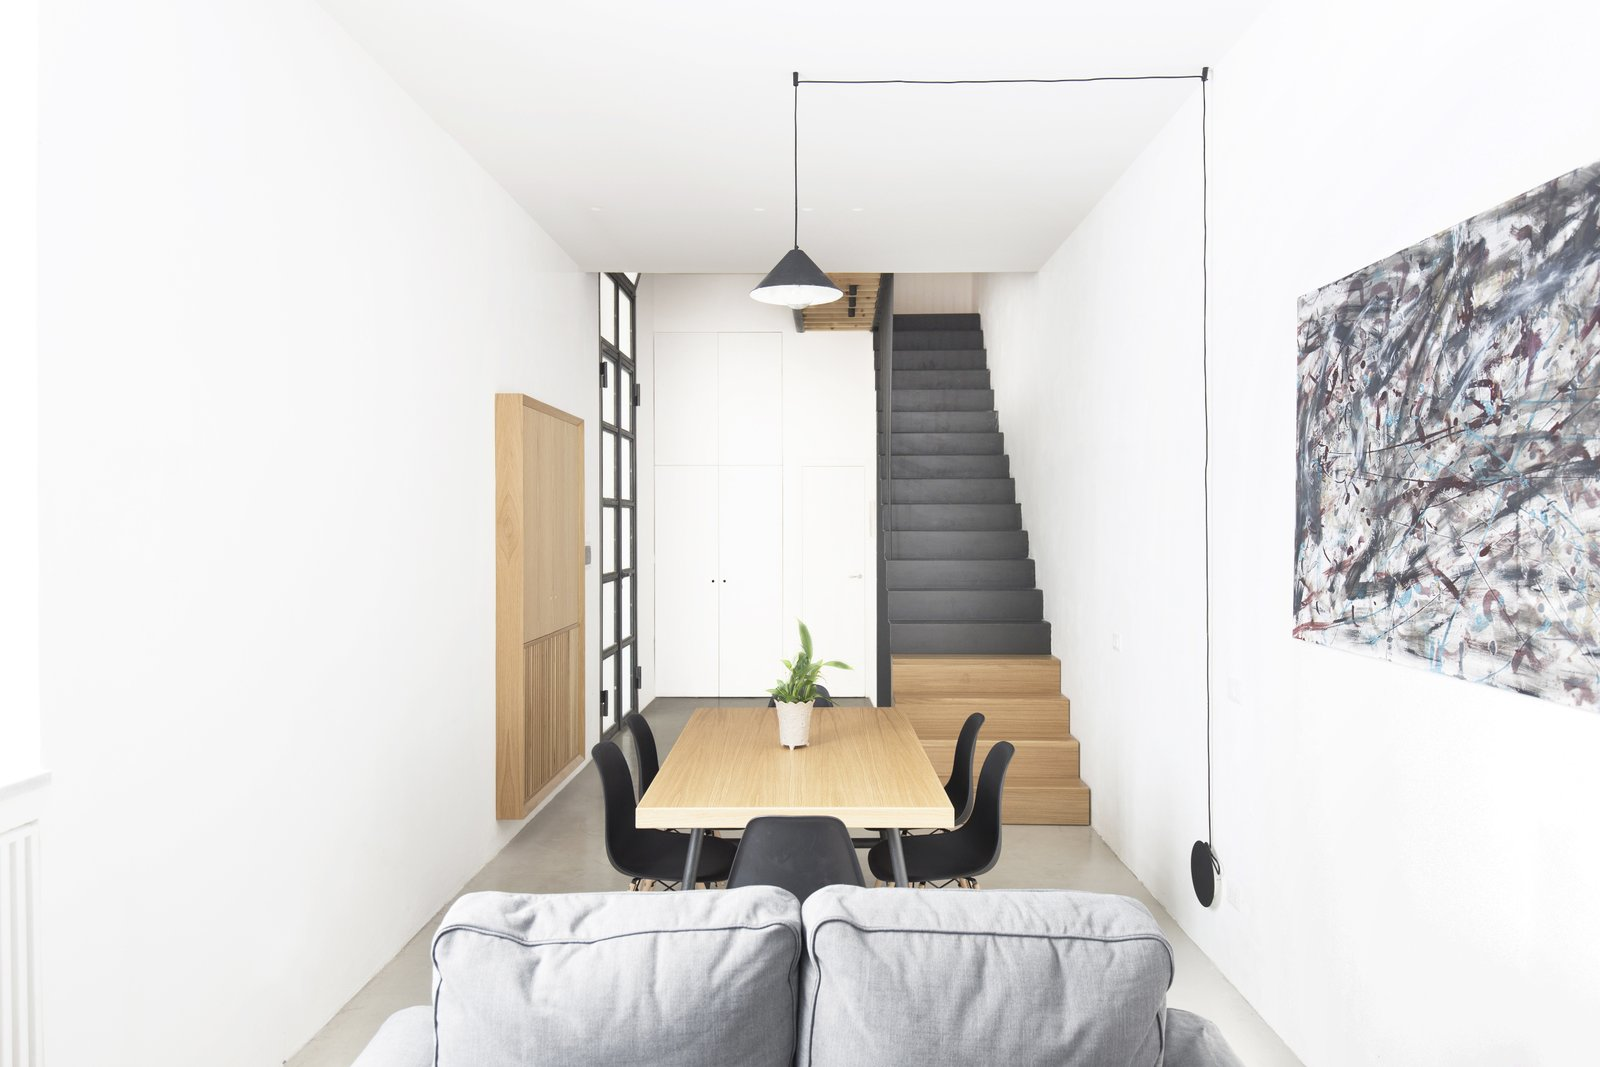 All furniture is made of oak wood except the staircase volume made entirely of black steel. Tagged: Living Room, Chair, Sofa, Ceiling Lighting, Floor Lighting, Table Lighting, and Pendant Lighting.  Best Photos from EXISTENZ MINIMUM- Palermo House A223